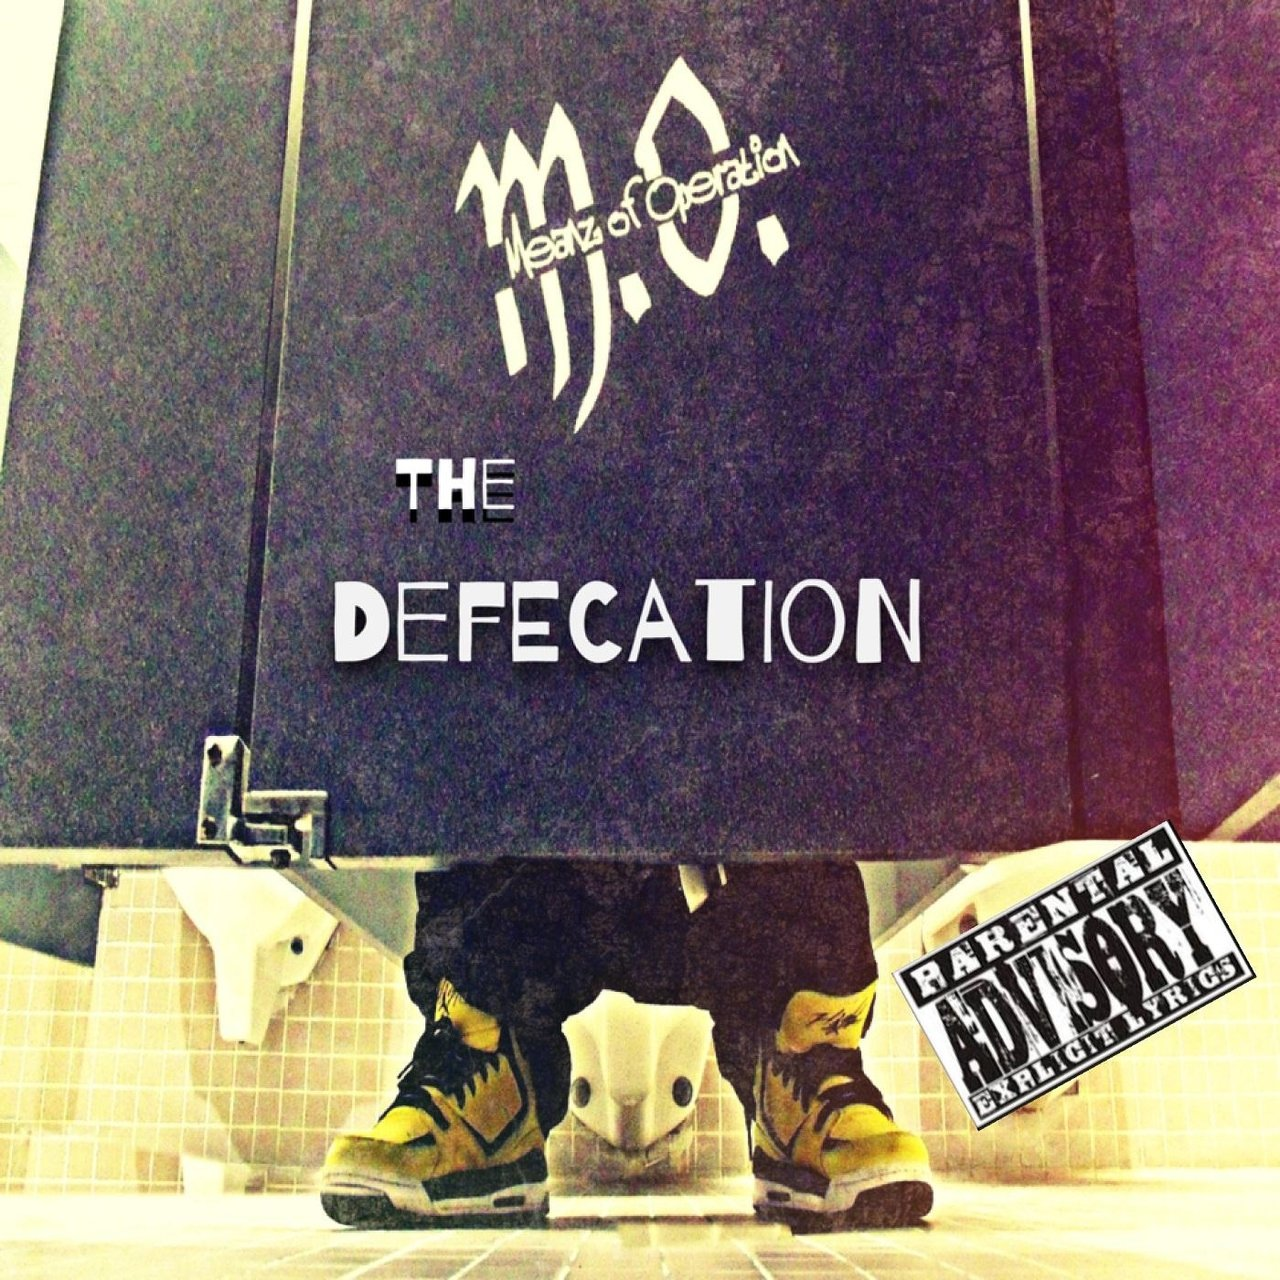 The Defecation